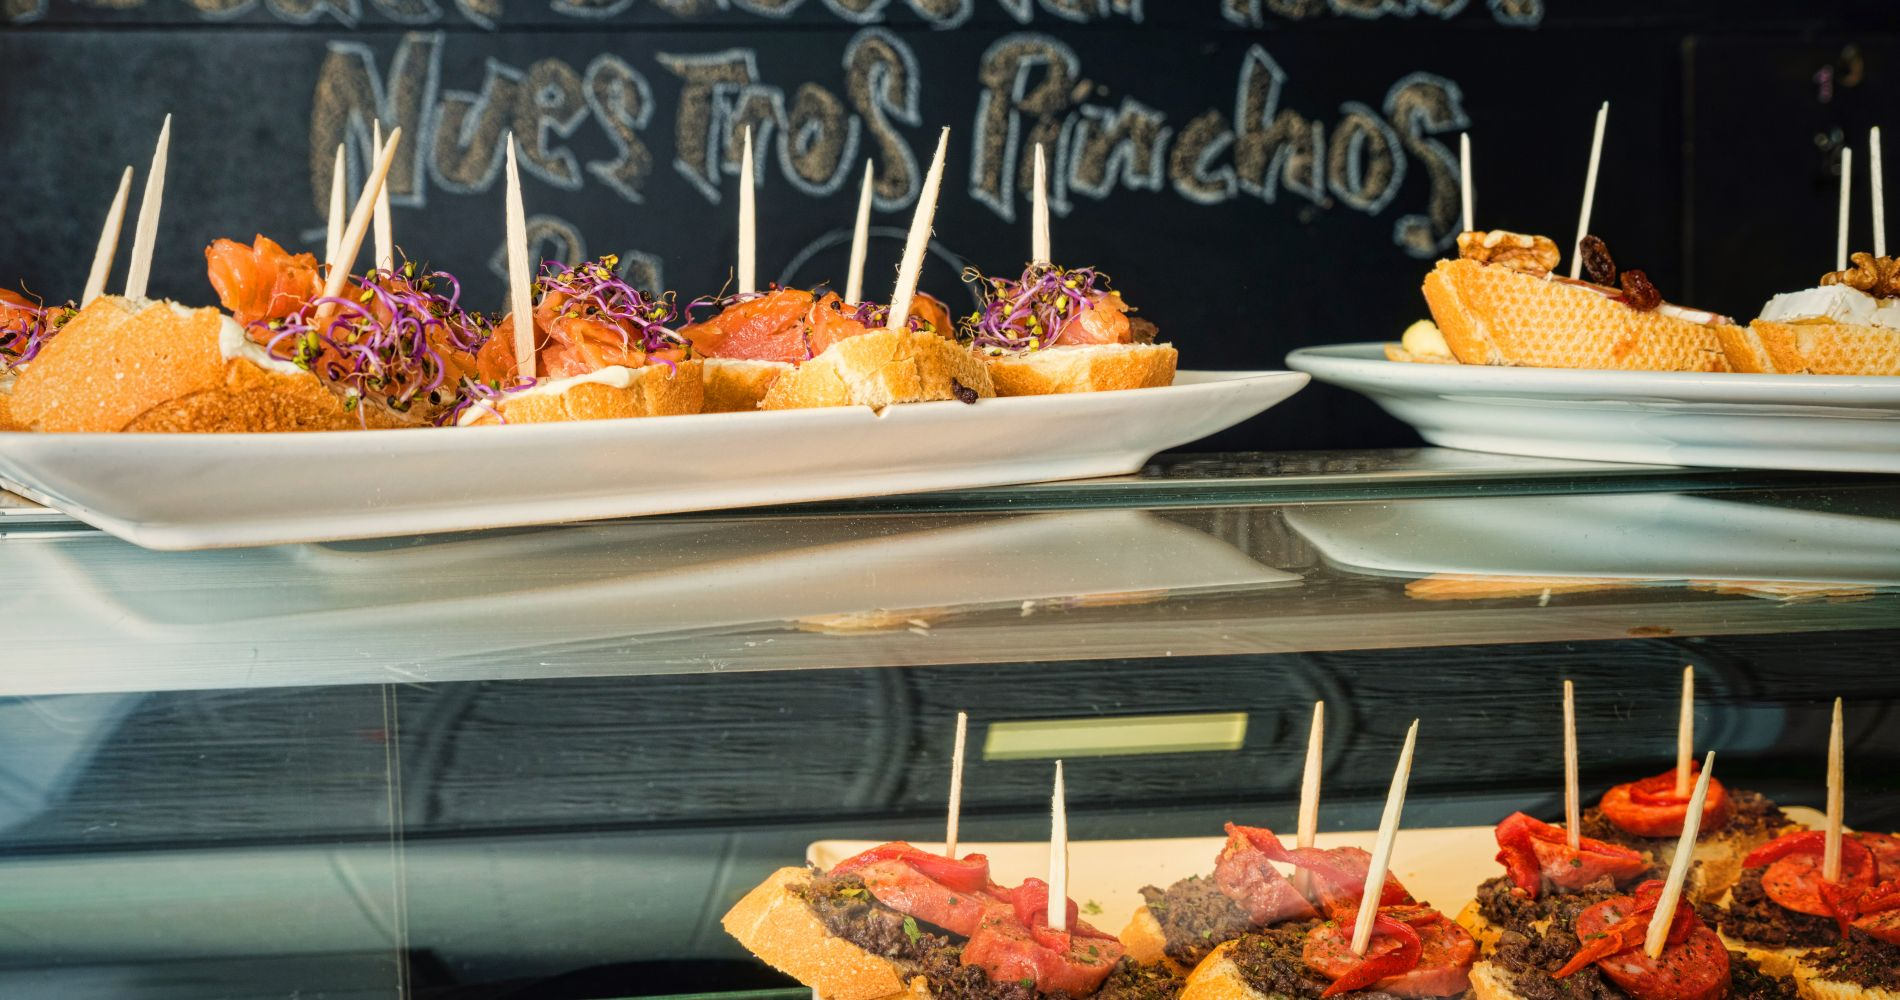 Evening Culinary Experience in Mallorca through Palma